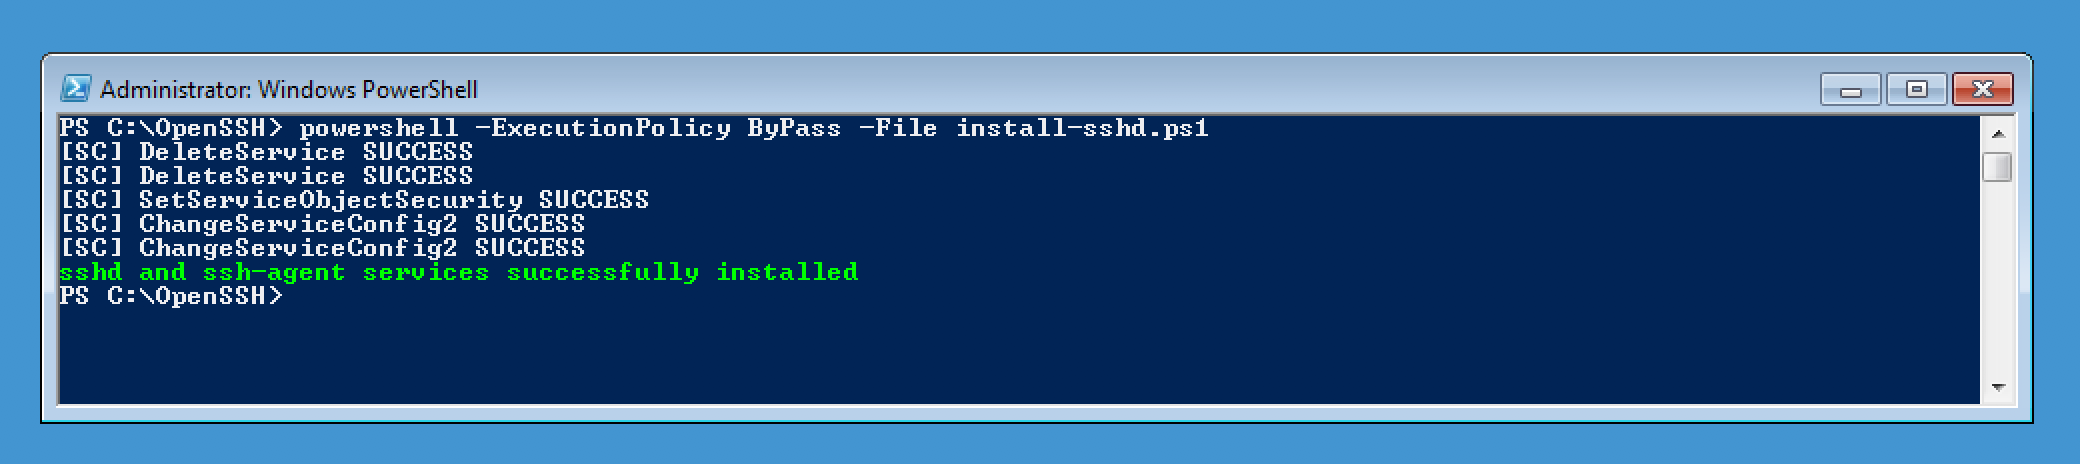 SSH Windows